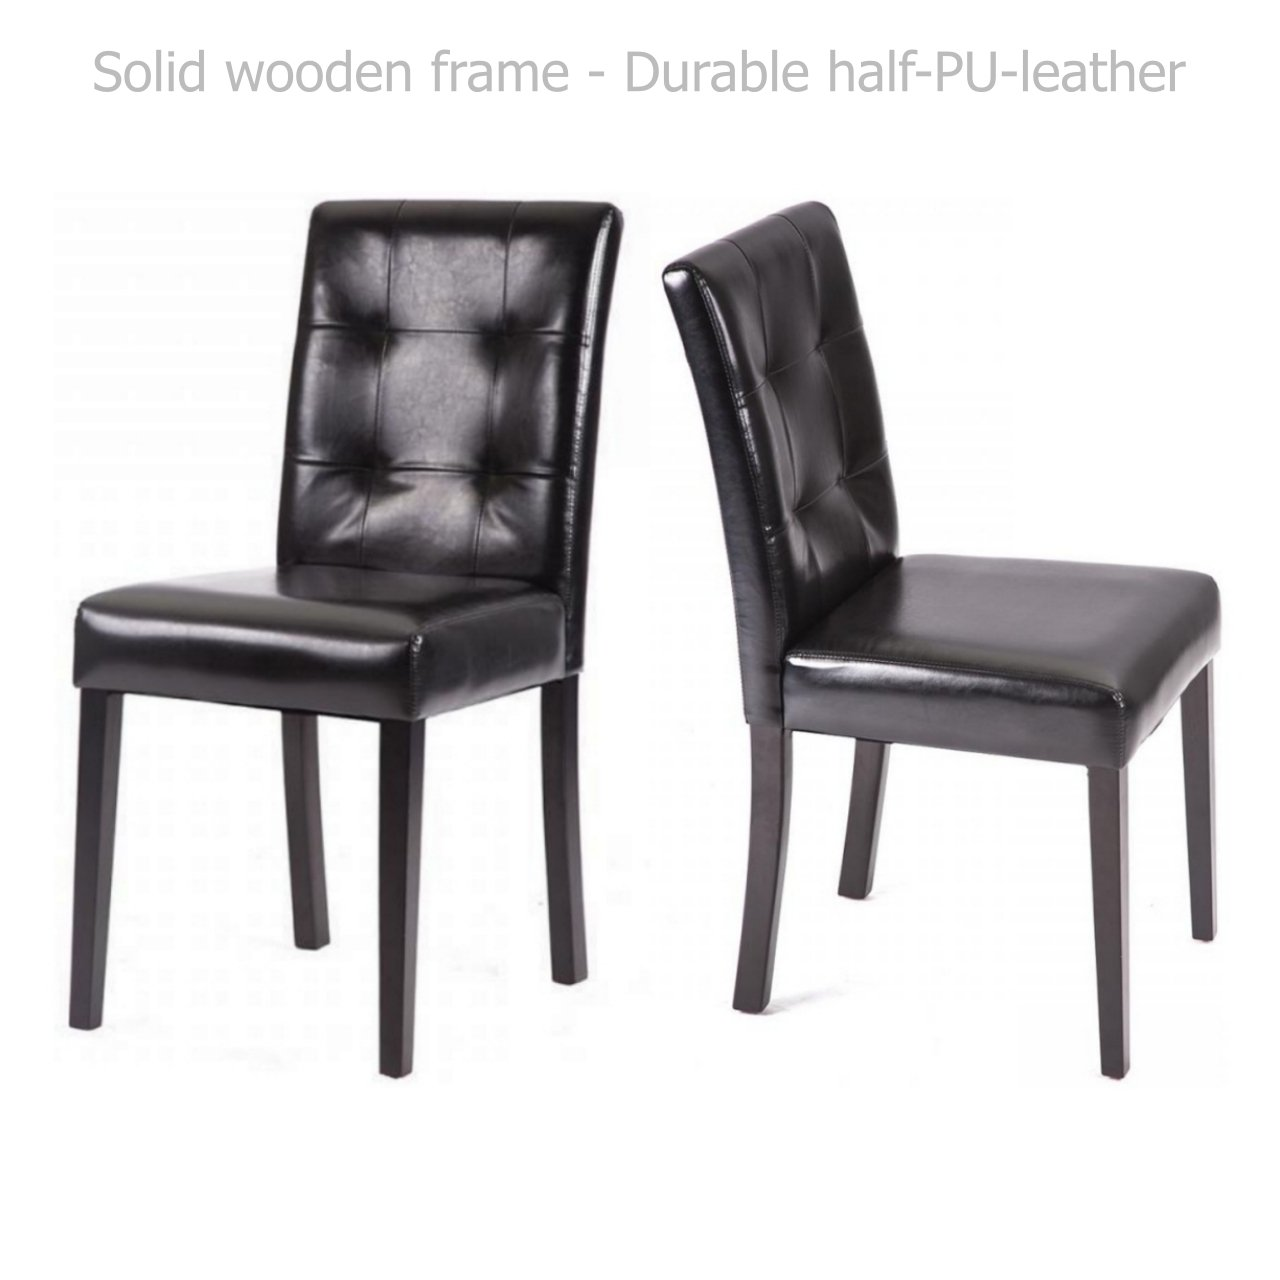 Modern Dining Chairs Sturdy Wooden Frame Tufted Backrest Design Half PU Leather Seats Home Office Furniture Decor - Set of 2 Black #1549